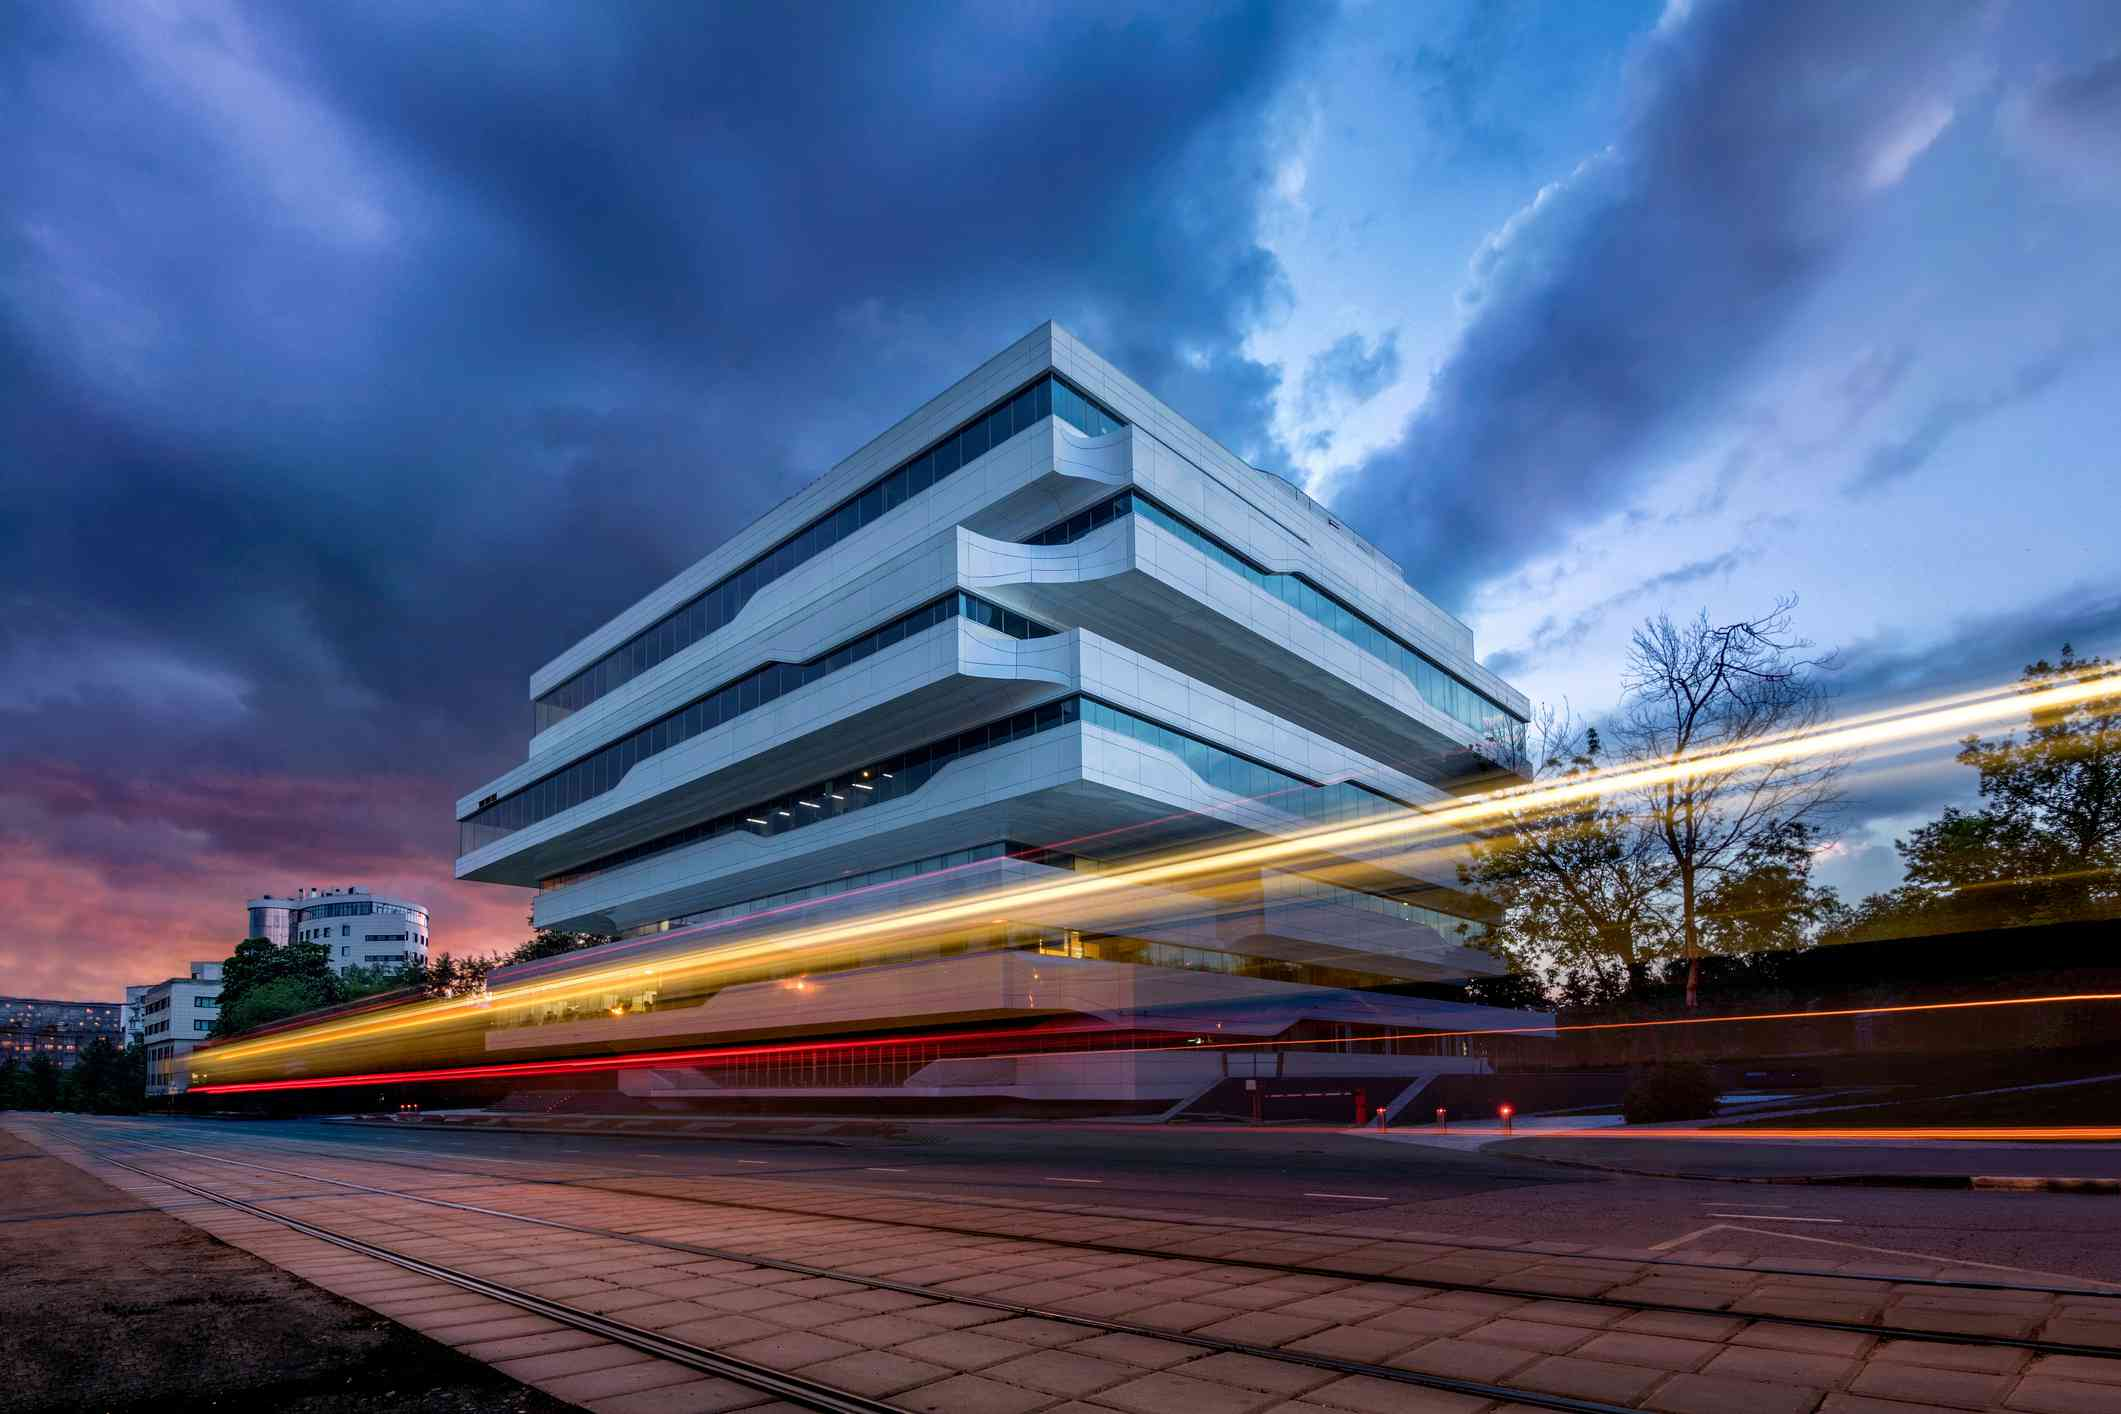 Light trails by Dominion Tower in Moscow